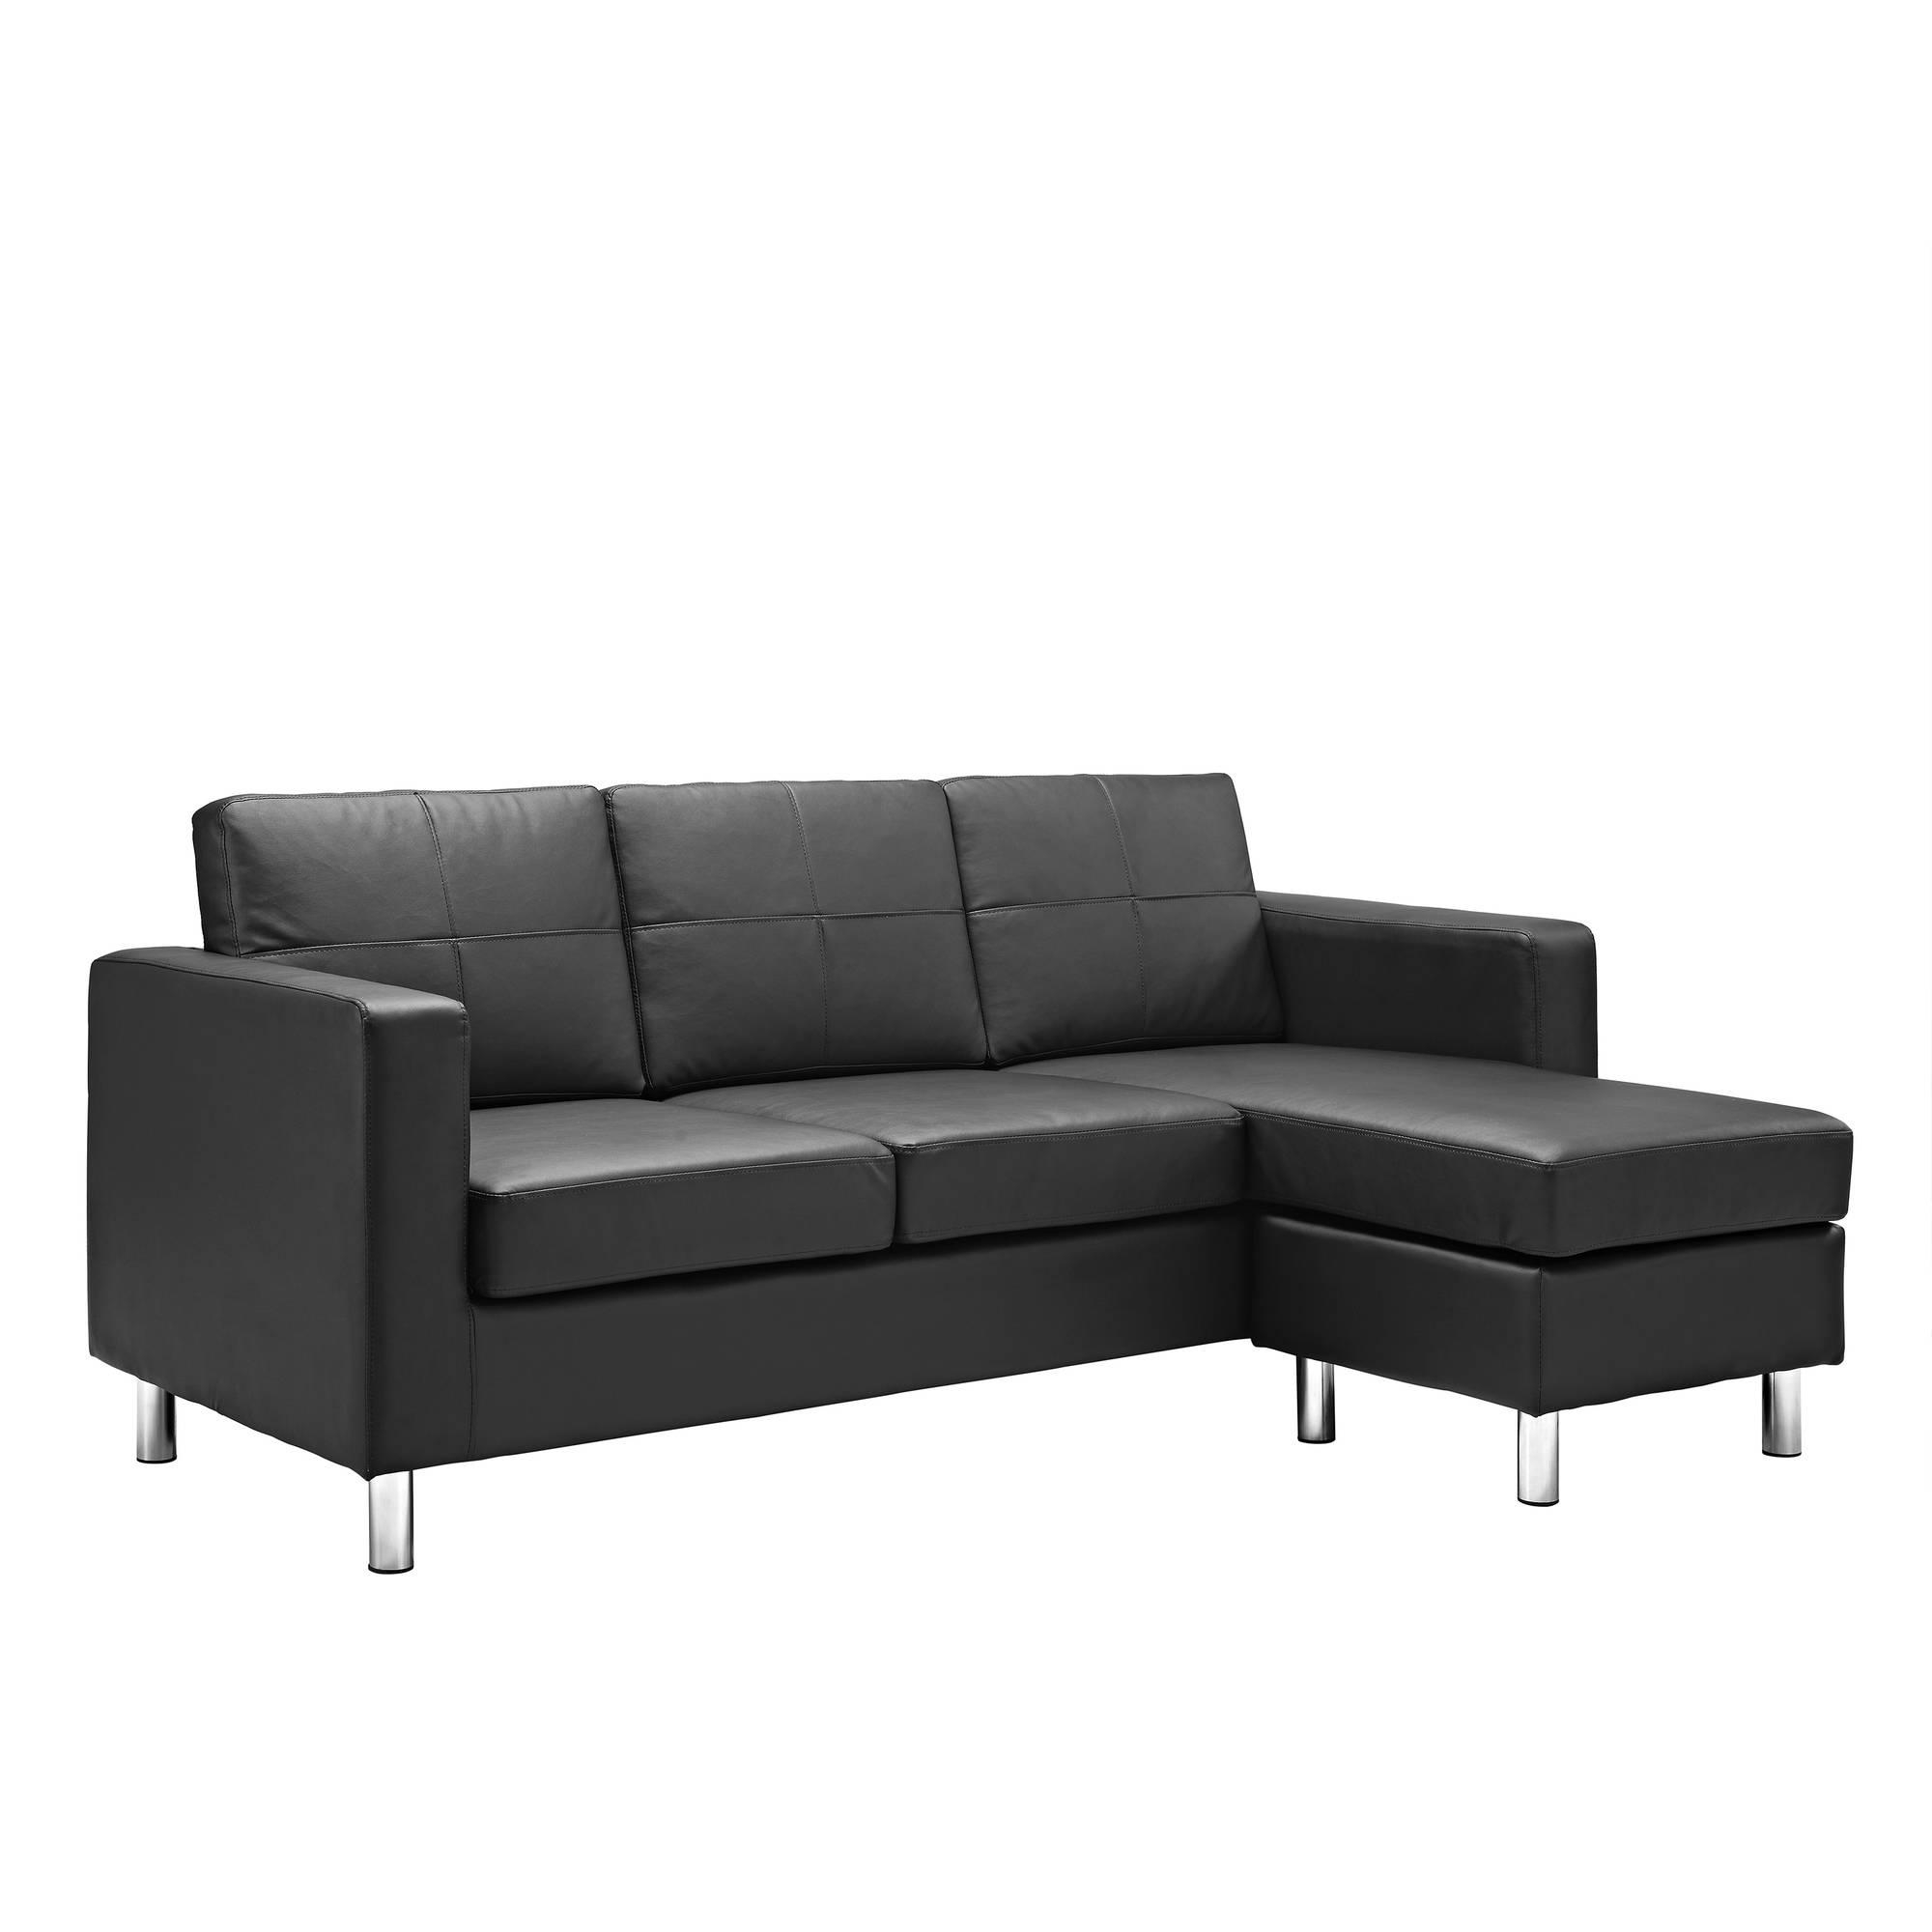 Dorel Living Small Spaces Configurable Sectional Sofa, Multiple Within Mini Sectional Sofas (View 15 of 20)